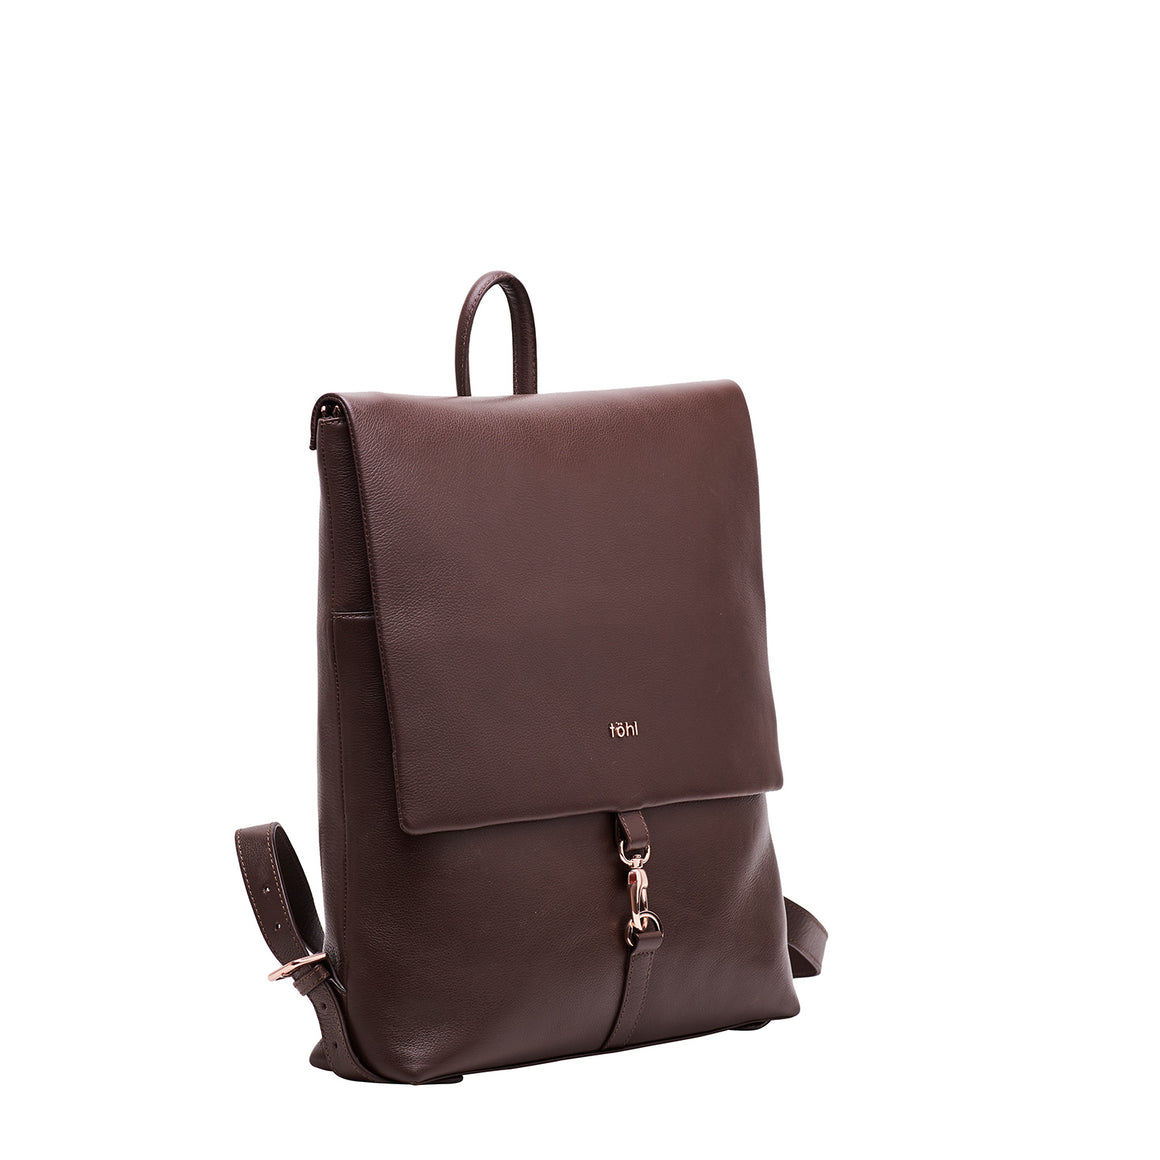 BP 0005 - TOHL FULTON WOMEN'S BACKPACK - CHOCO